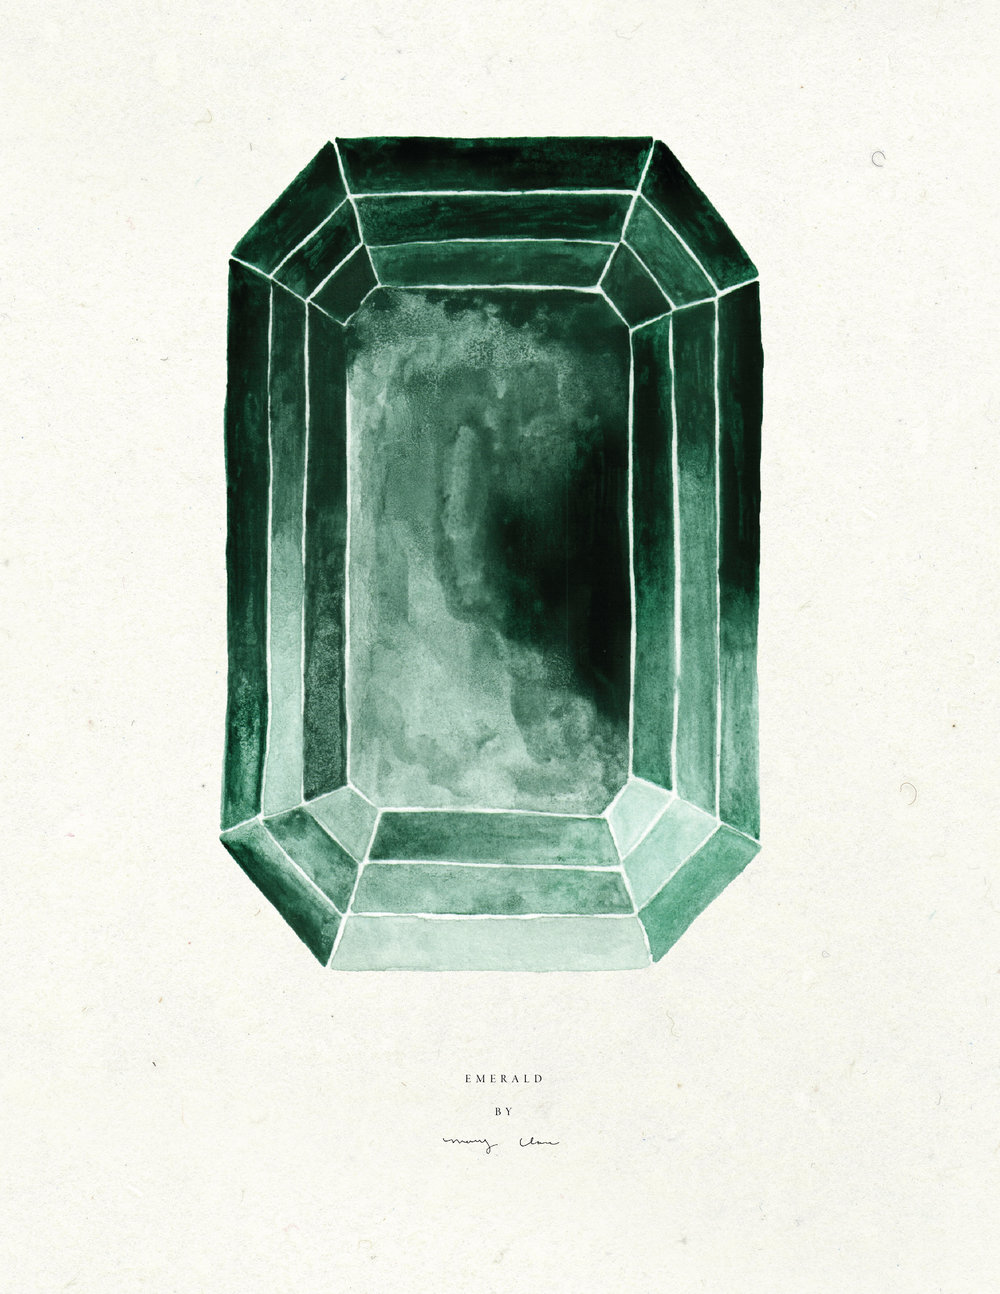 Emerald: Mary Clare Wilkie